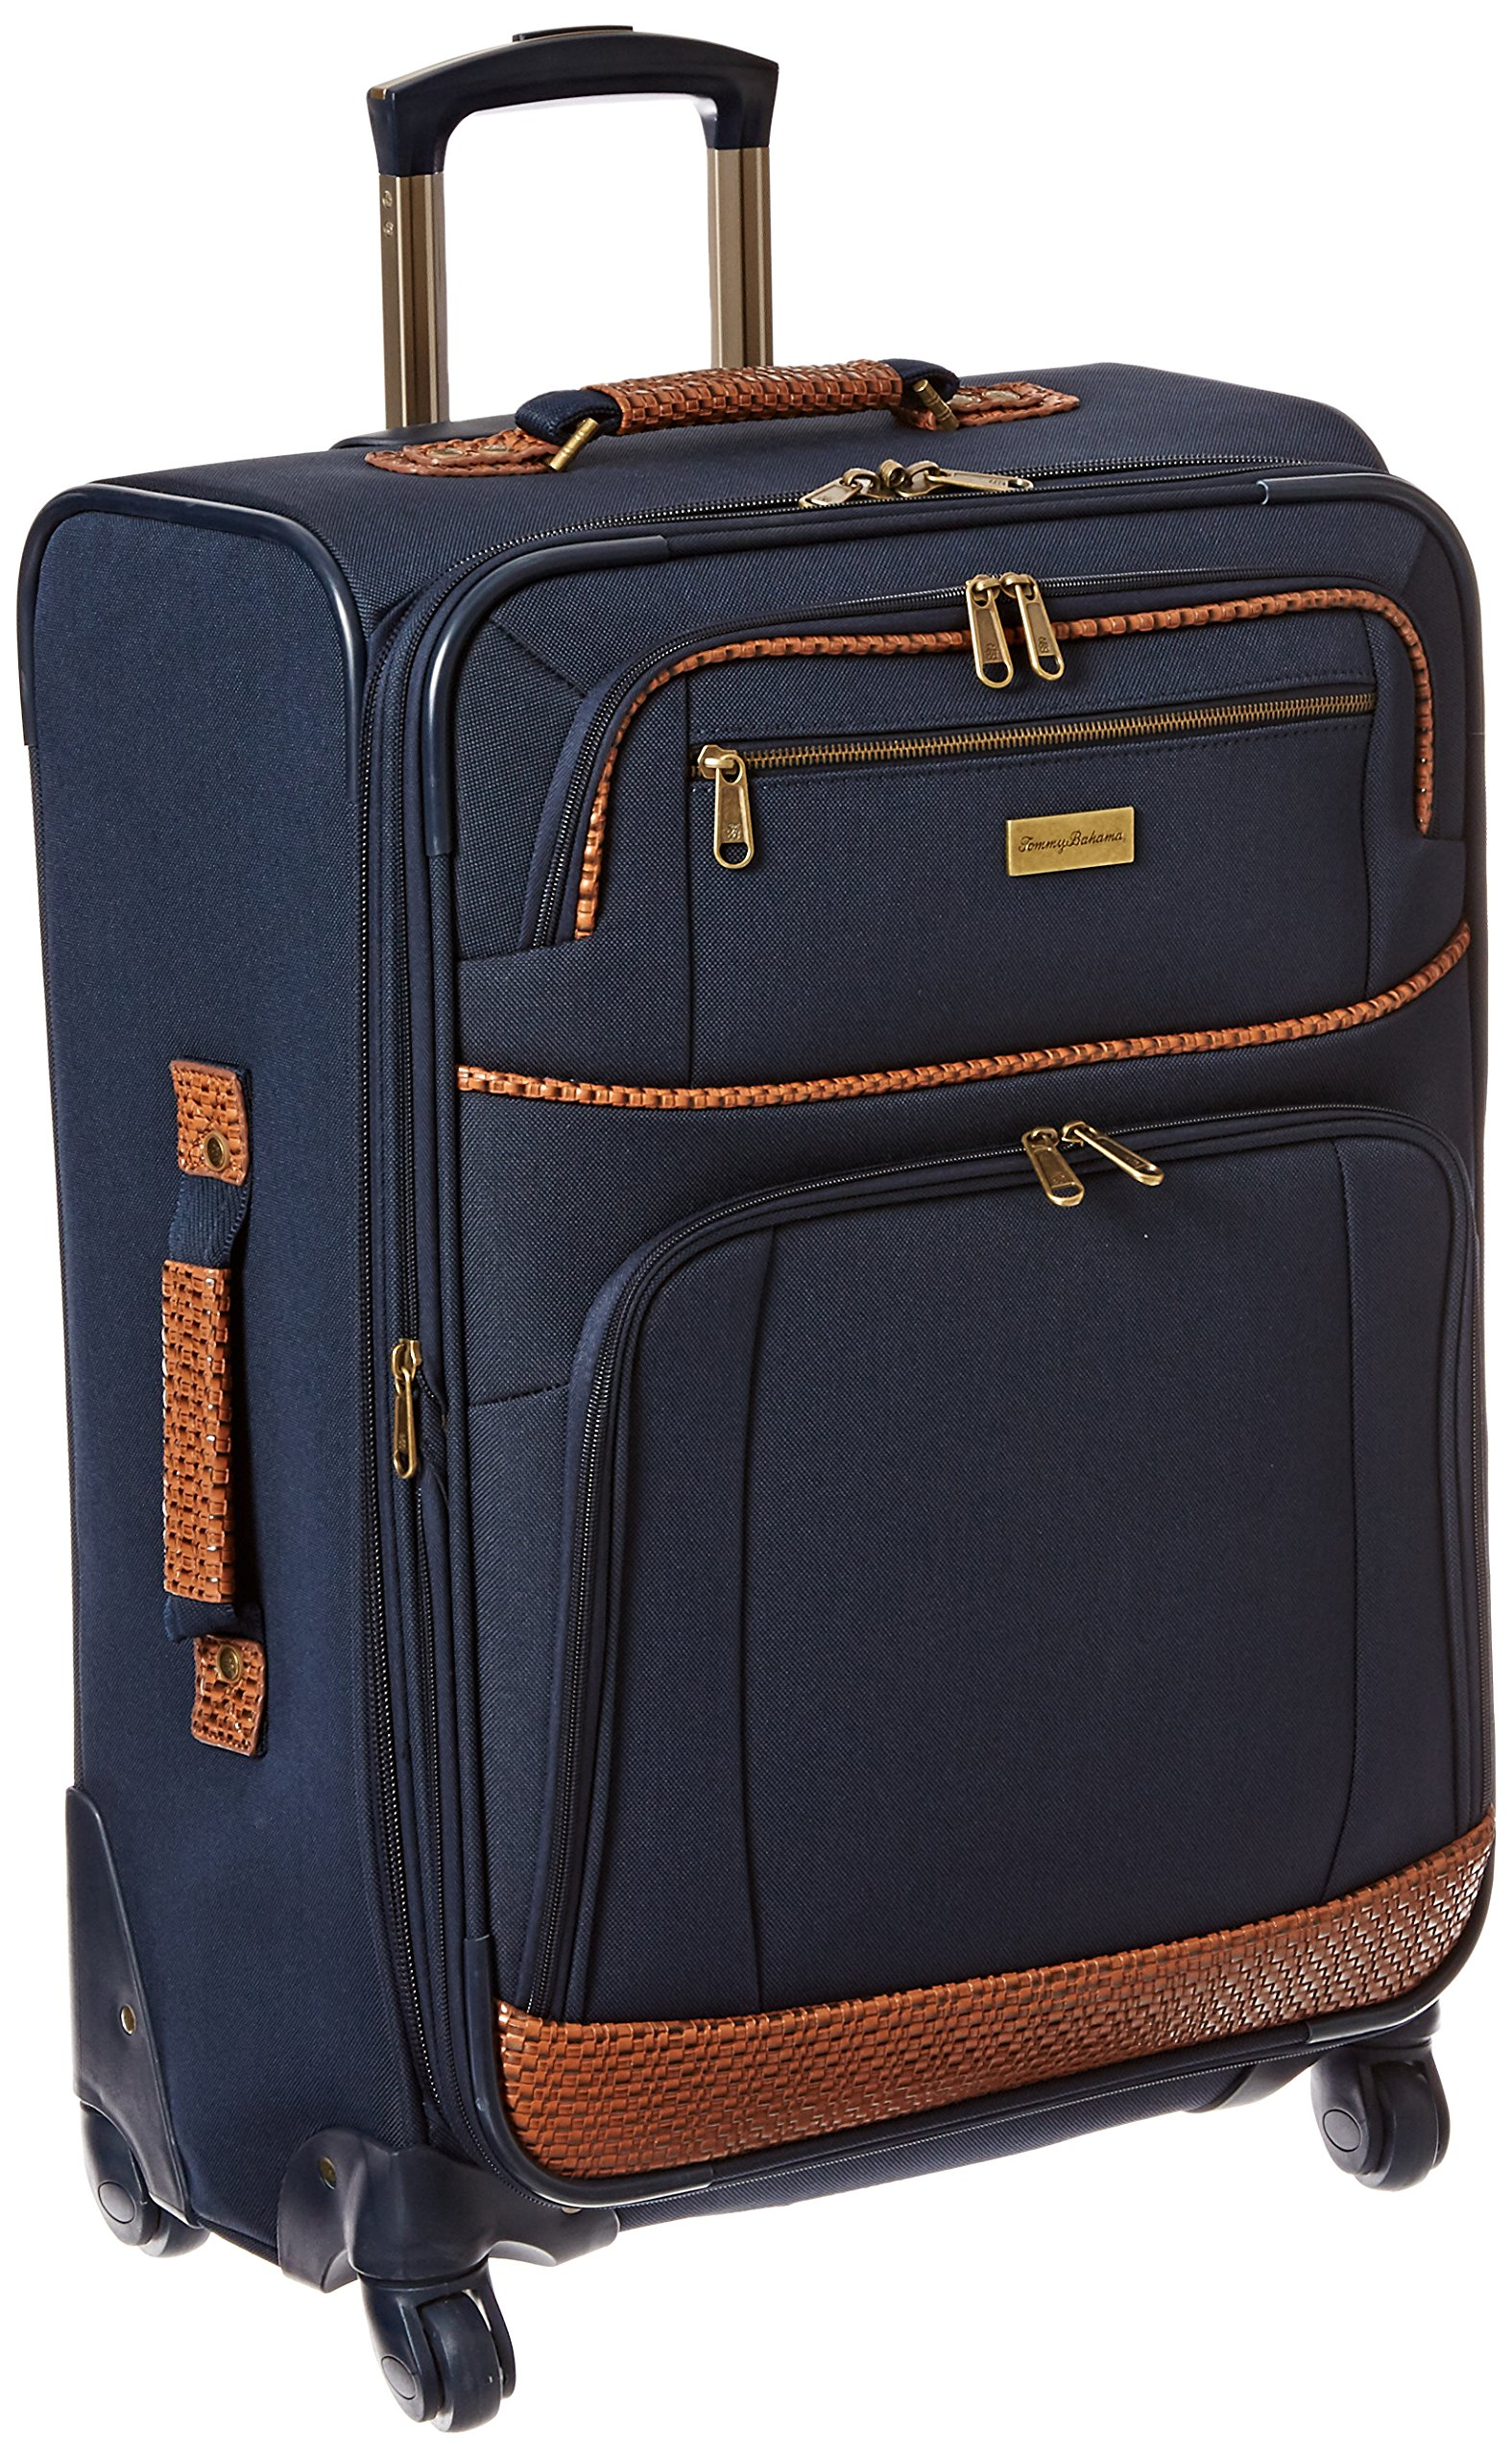 Tommy Bahama Lightweight Spinner Luggage - Expandable Suitcases for Men and Travel with Rolling Wheels, Navy